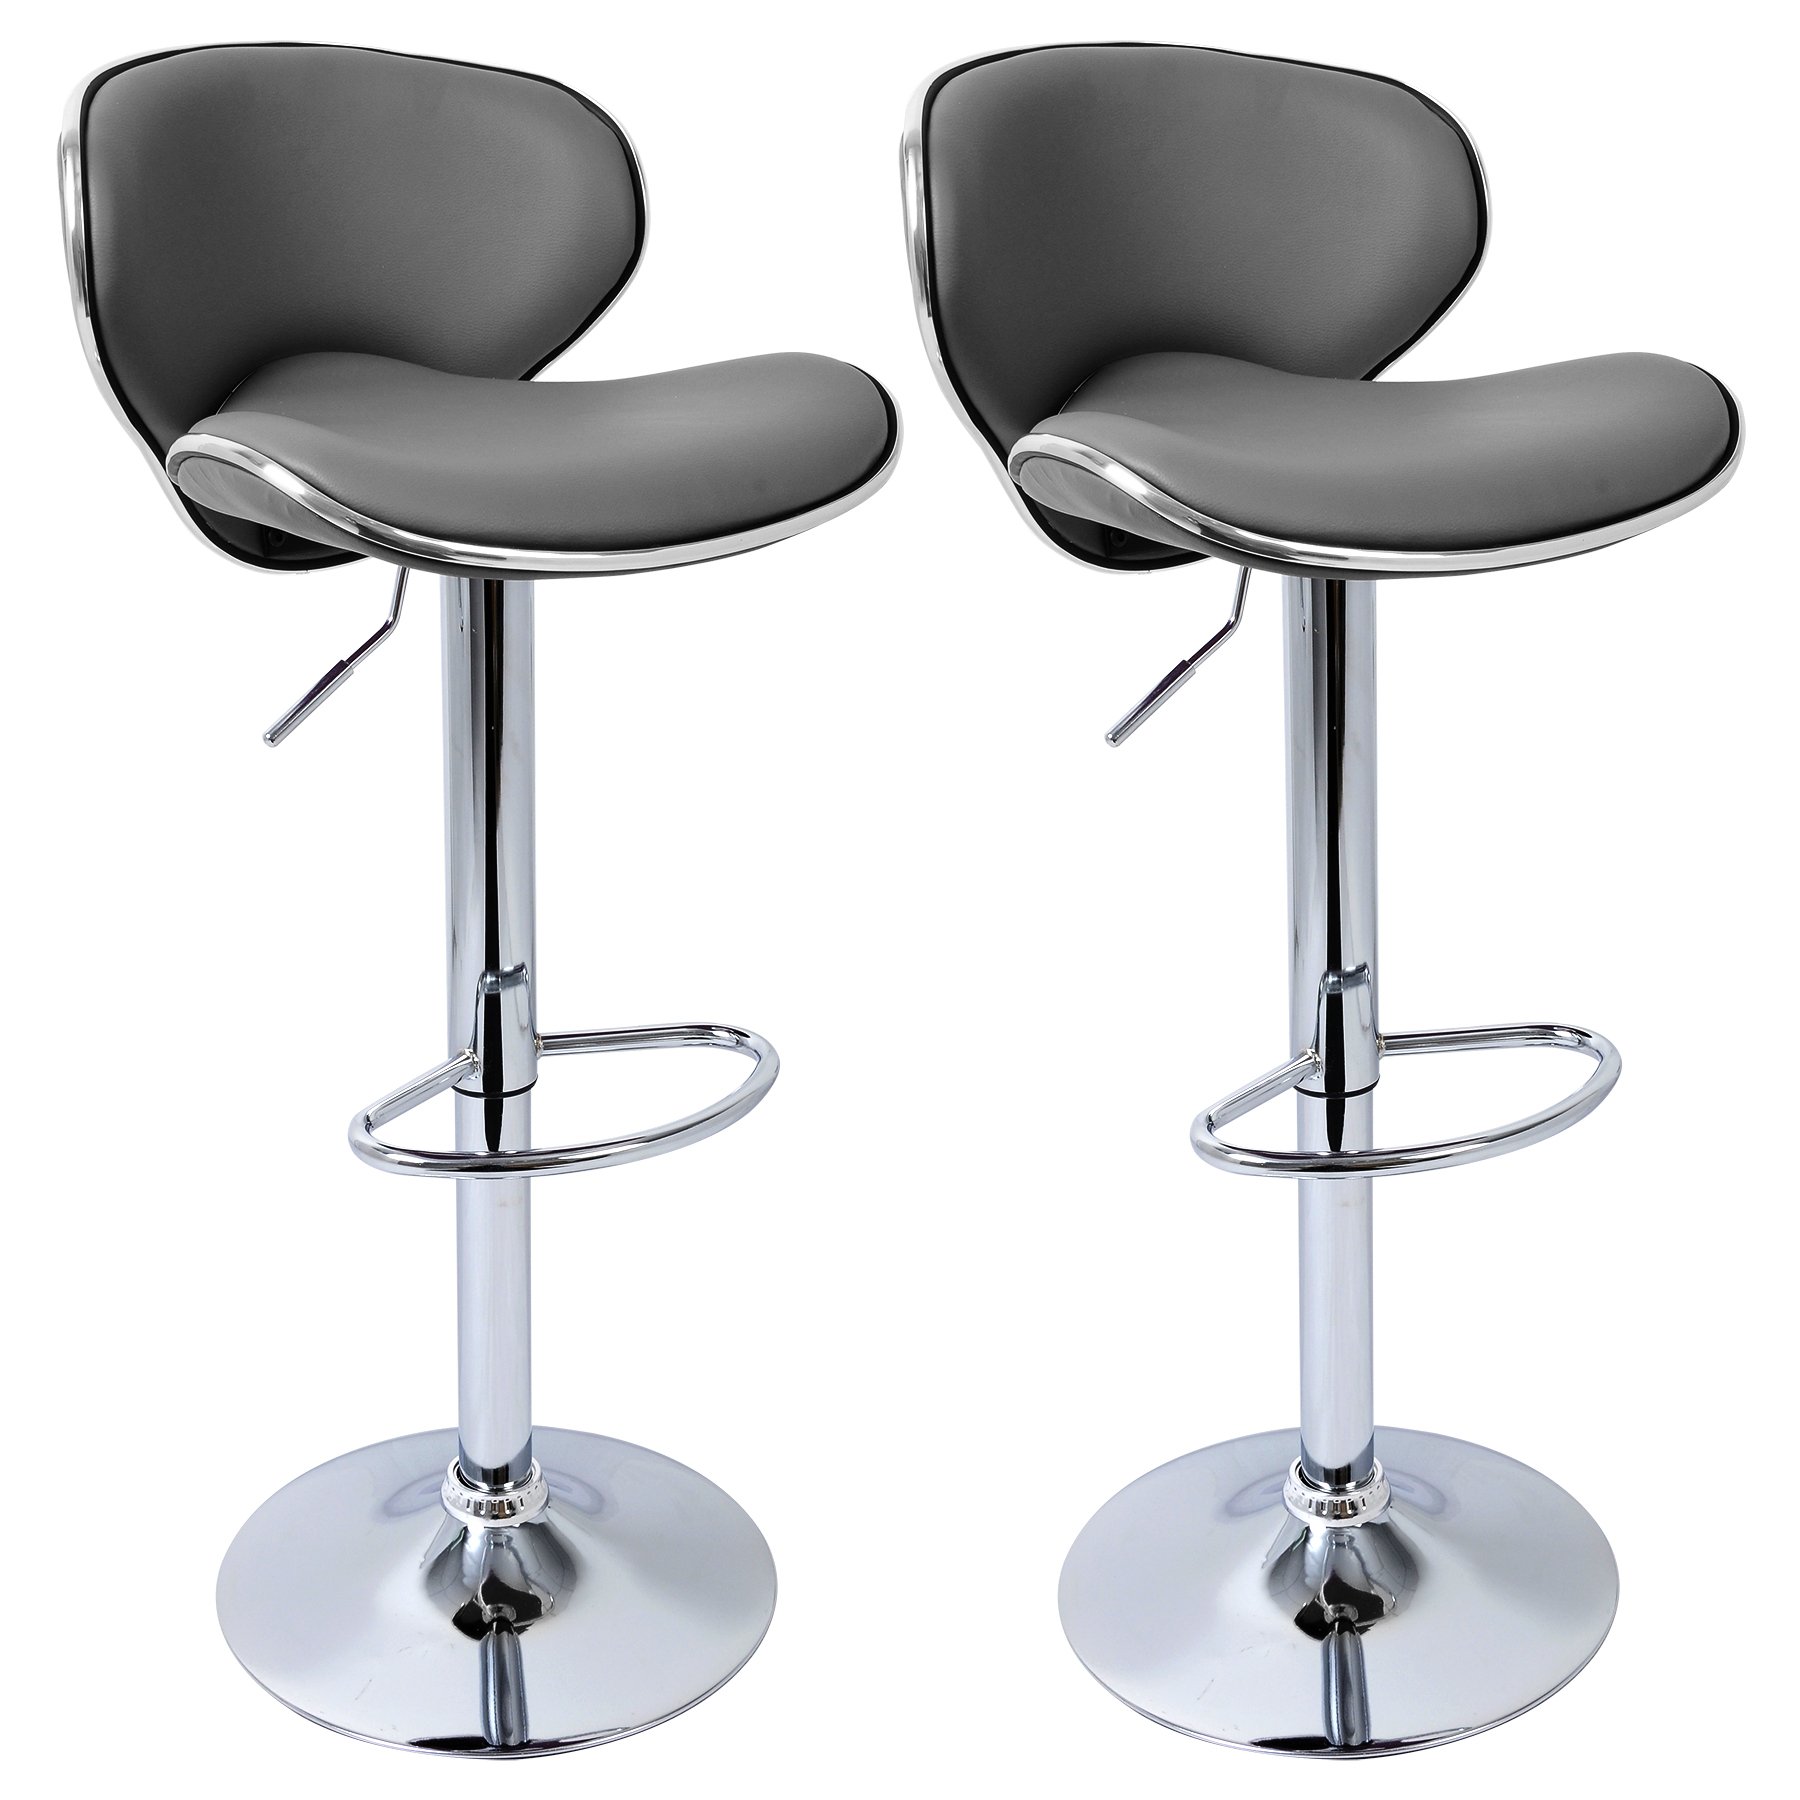 bar stool chair grey cosco folding table and chairs 1 2 pcs faux leather stools kitchen breakfast